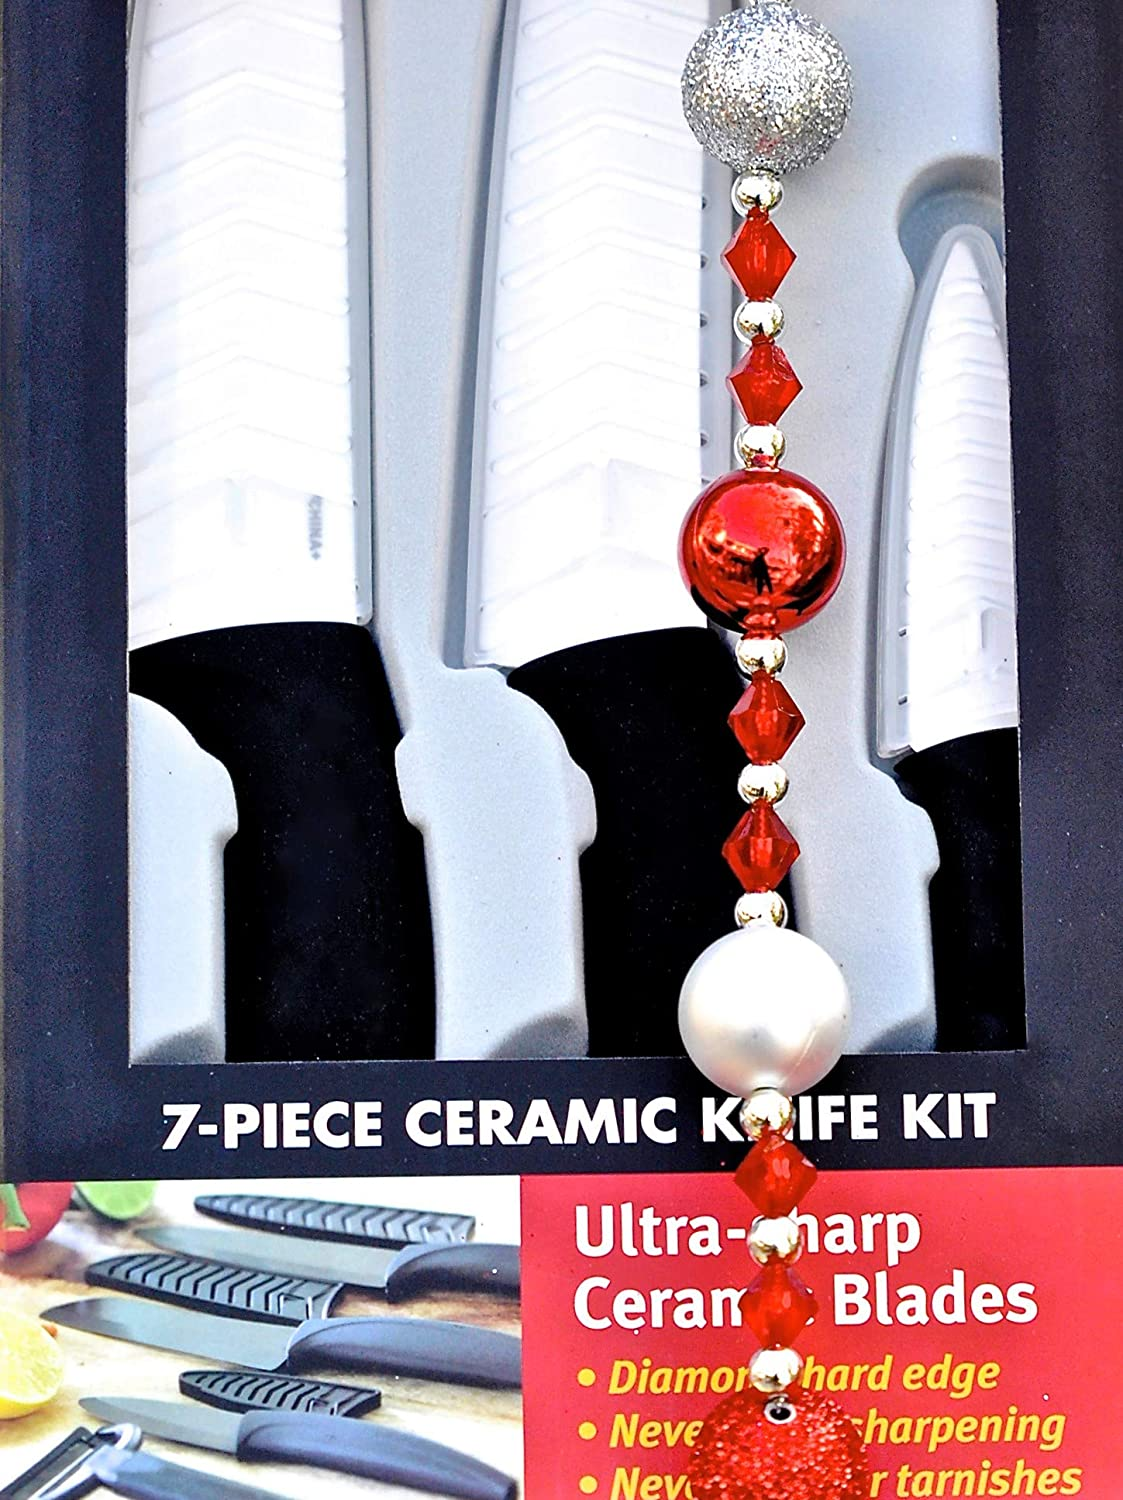 Miracle Blade World Class Series White Ceramic 7-piece Knife Set with Protective Blade Covers